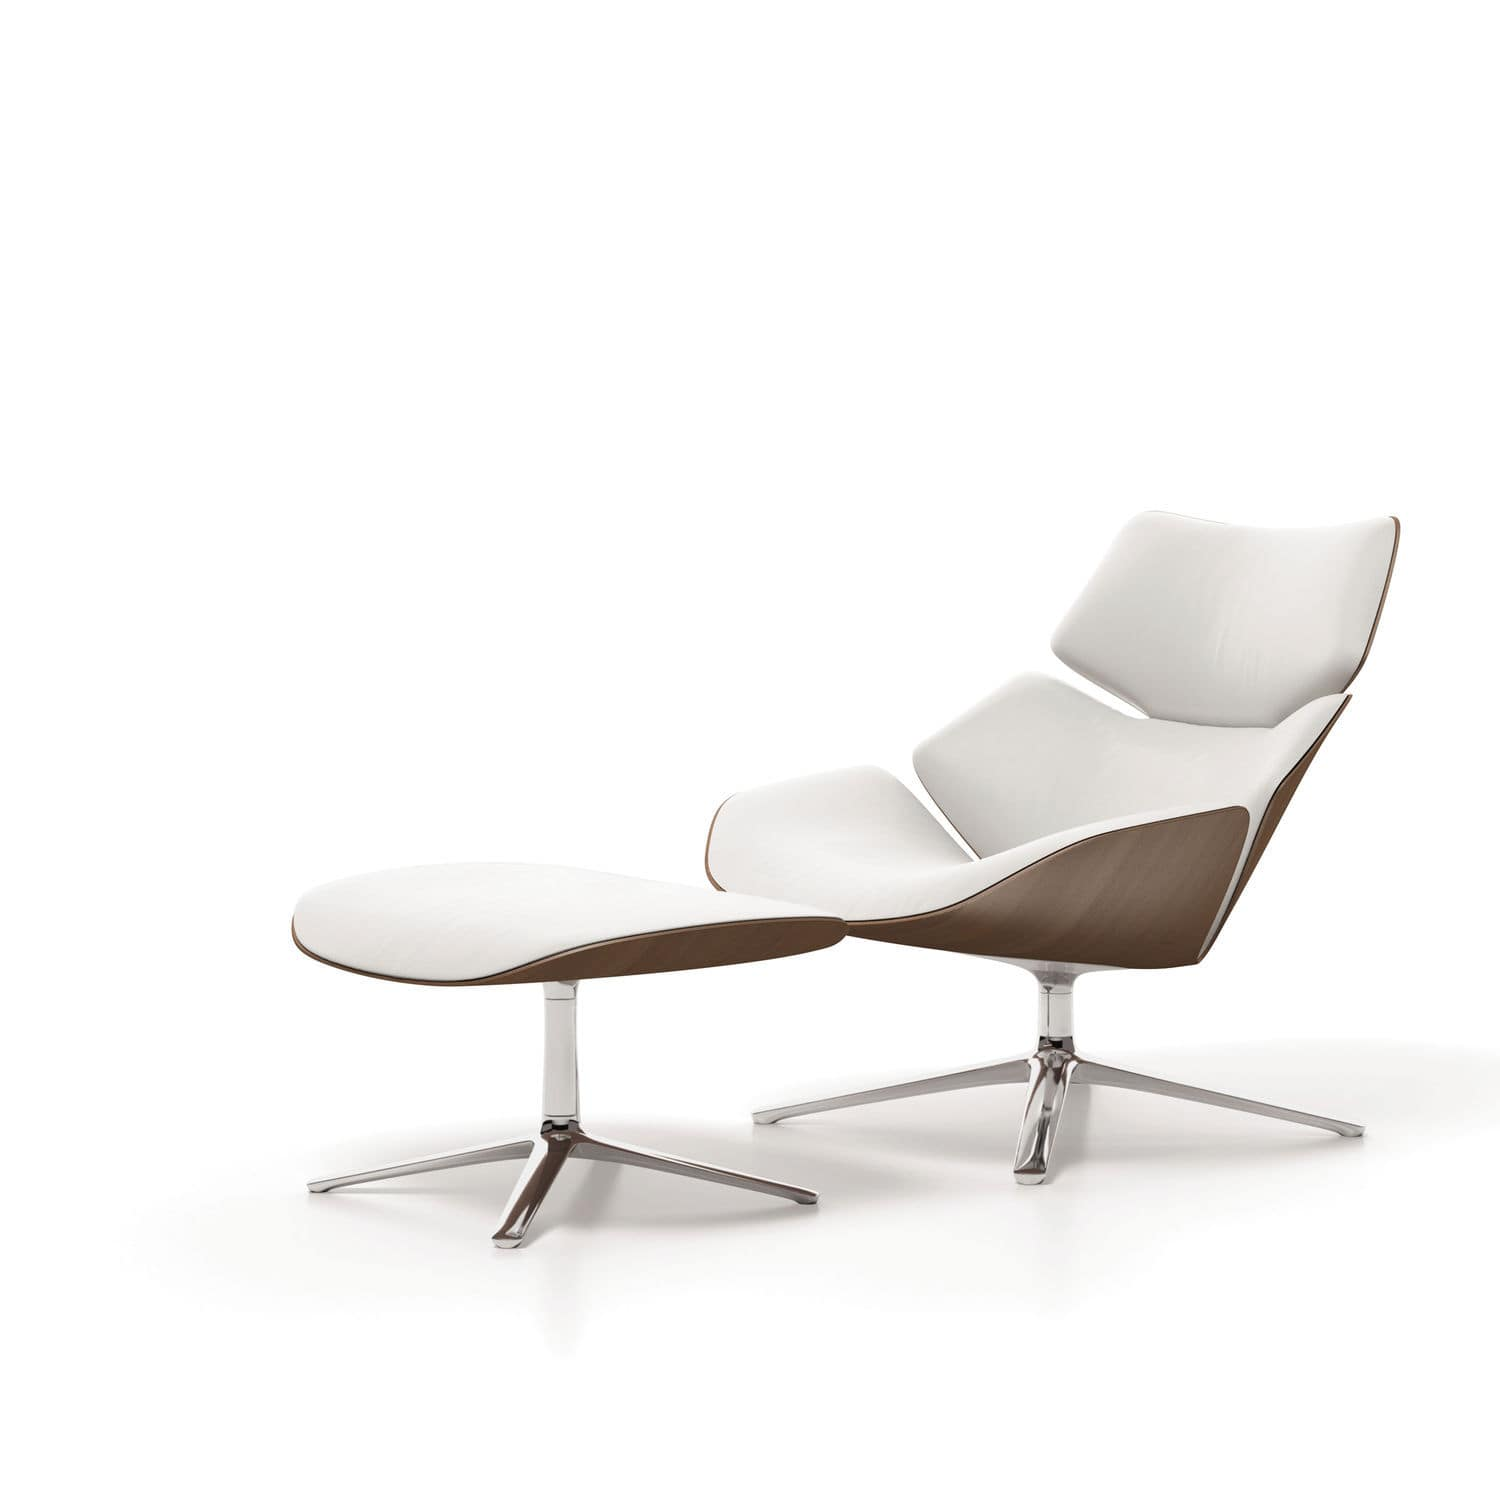 Cor Shrimp Fauteuil.Contemporary Lounge Chair Wooden Fabric Leather